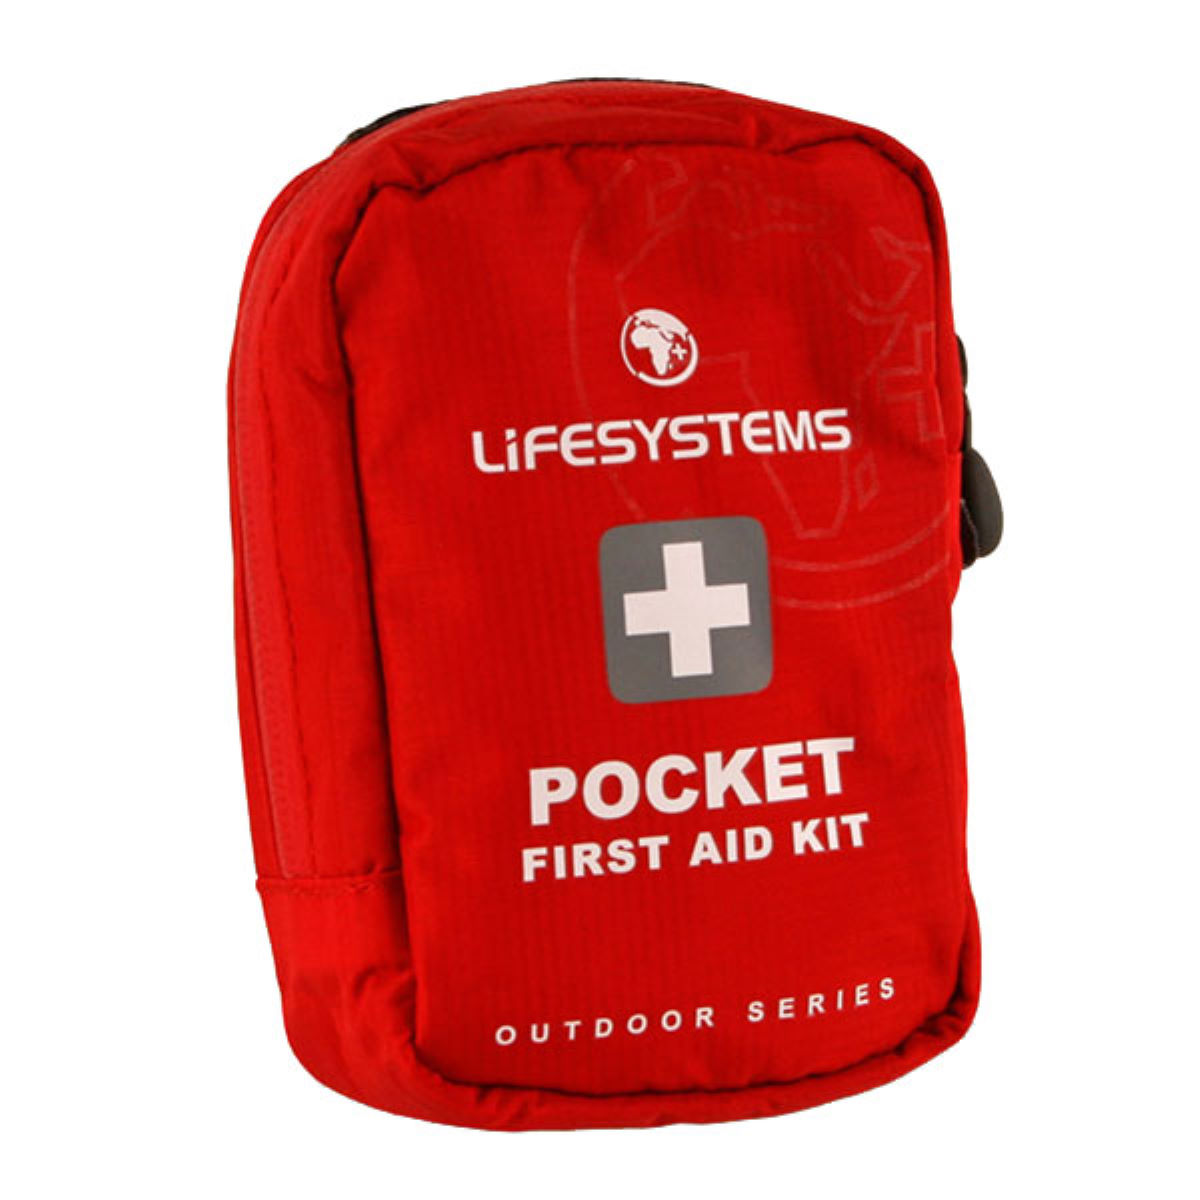 Lifesystems Lifesystems Pocket First Aid Kit   First Aid Kits